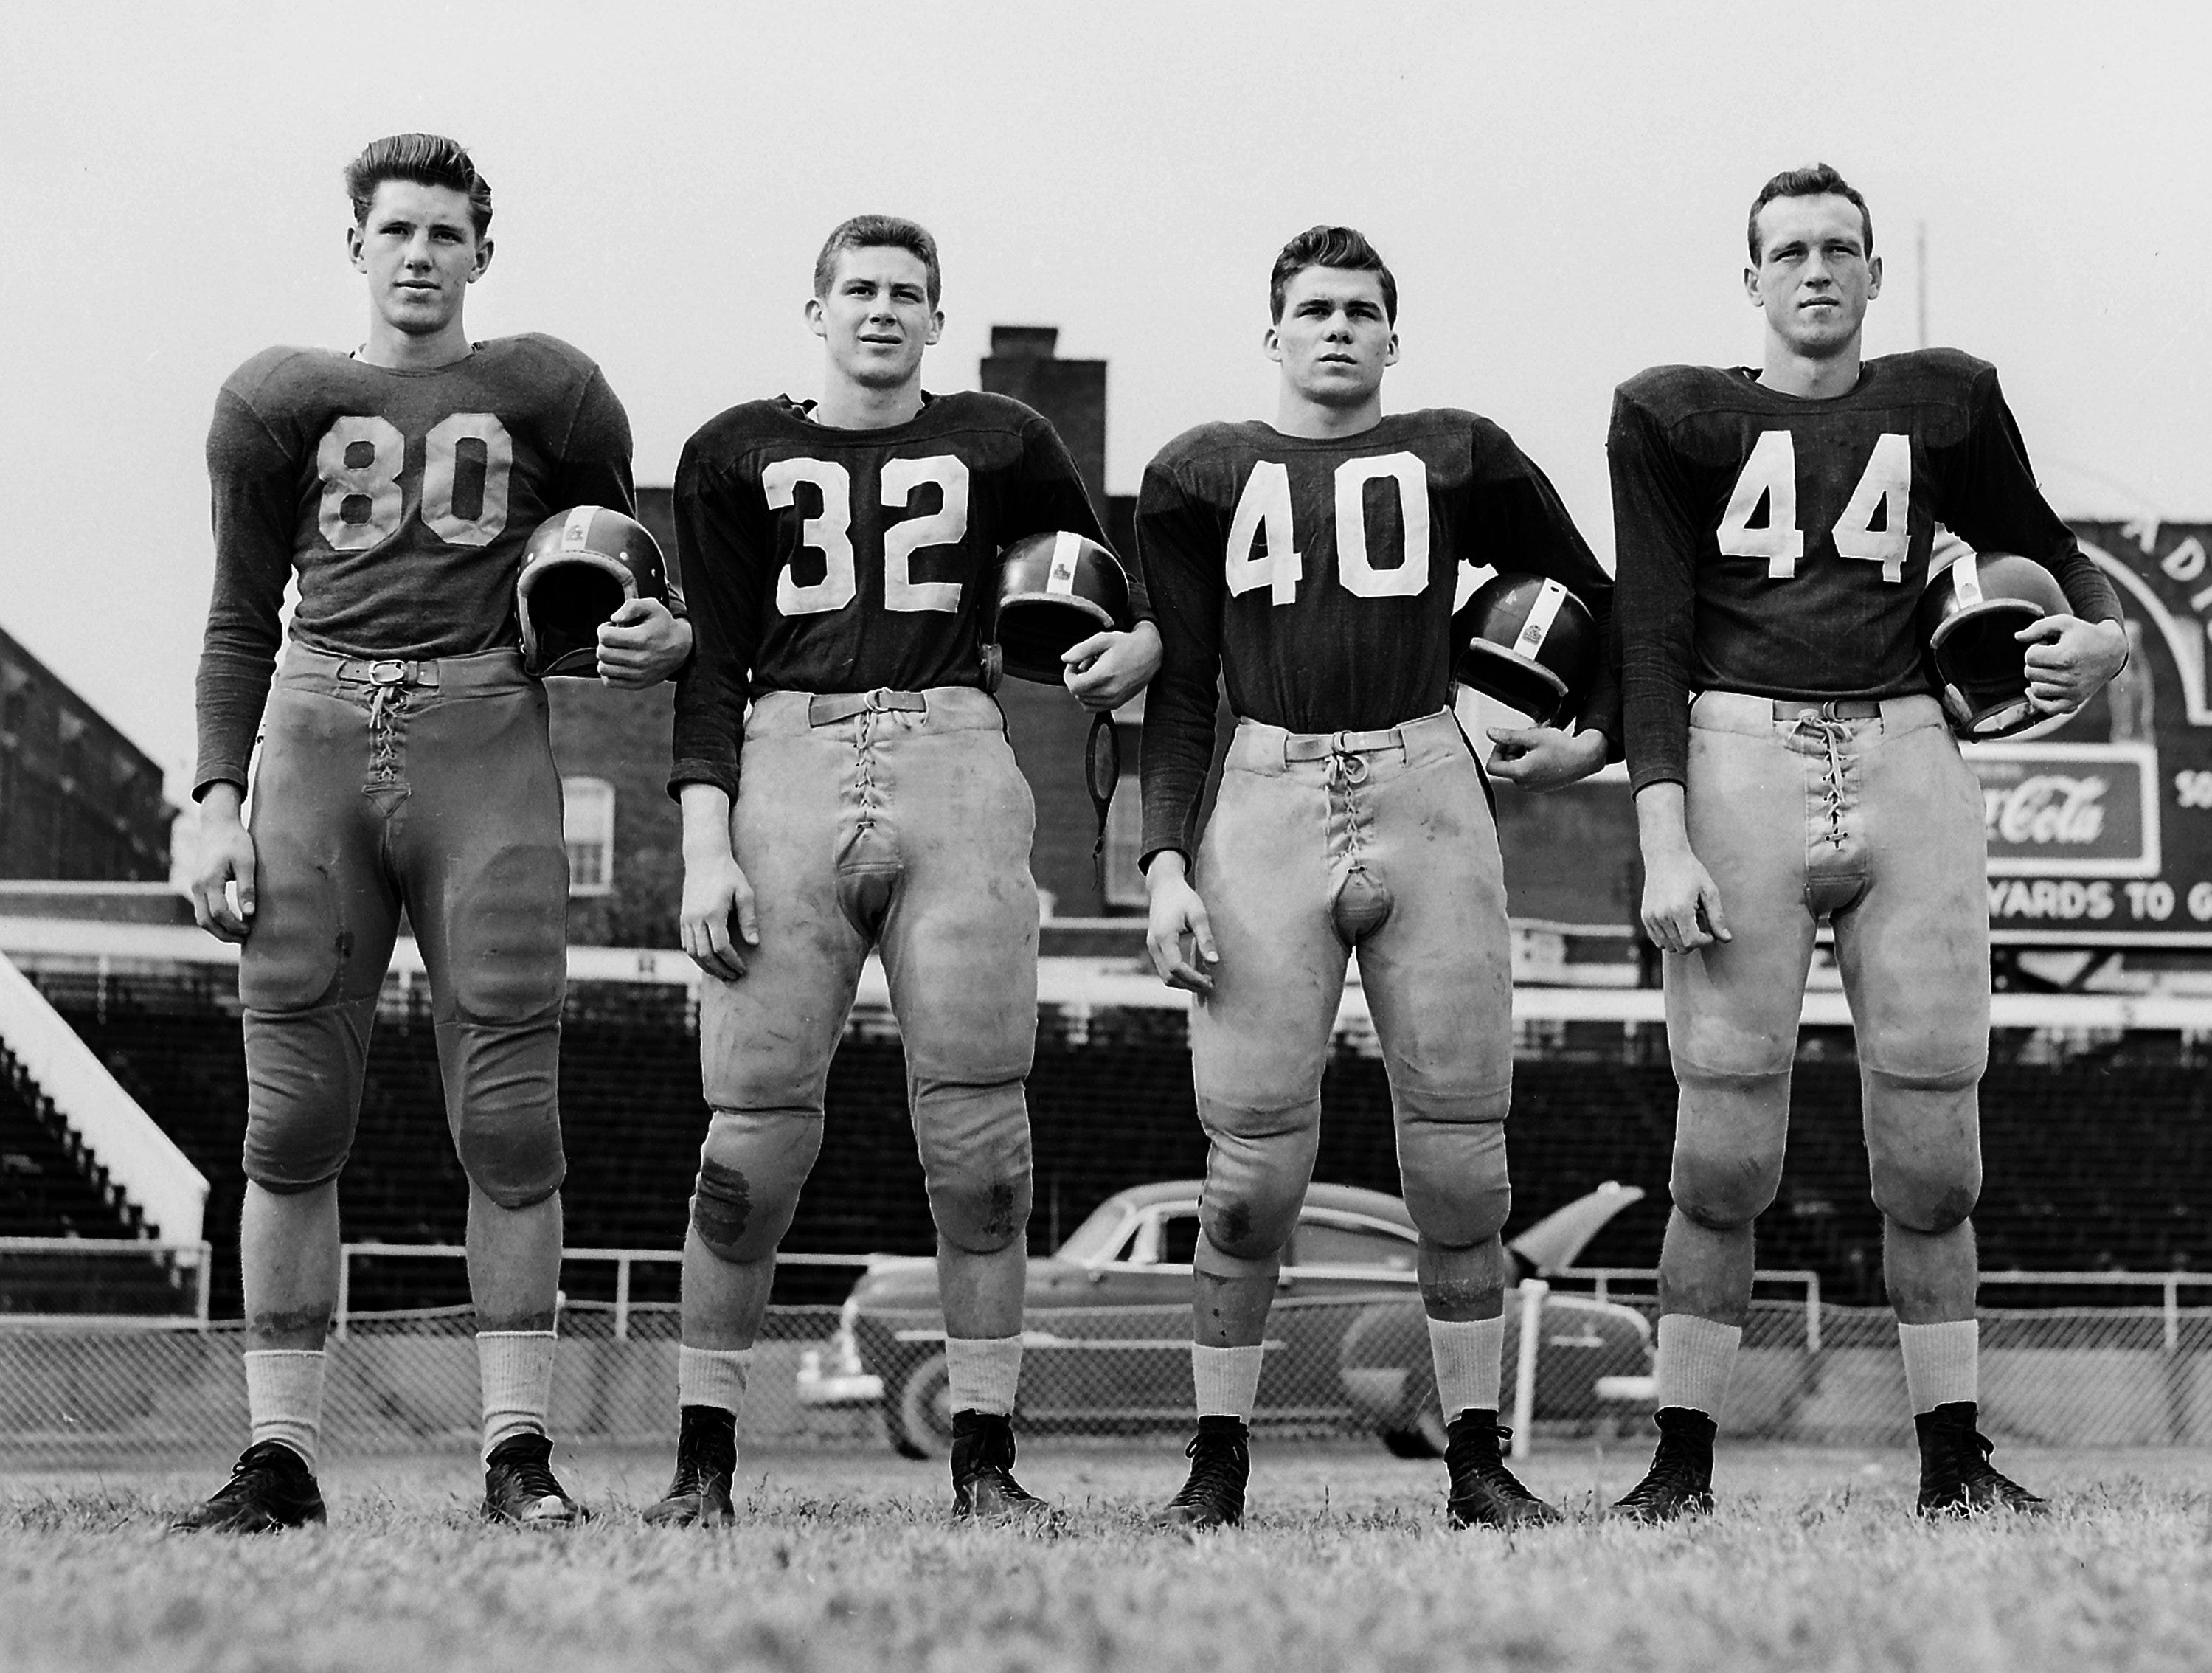 Pictured as members of the All-Memphis backfield on Nov. 25, 1951 are Johnny Martin (80) of Central, Clifton Parker (32), Ralph Robison (40) and Marvin Throneberry (44), all of South Side.